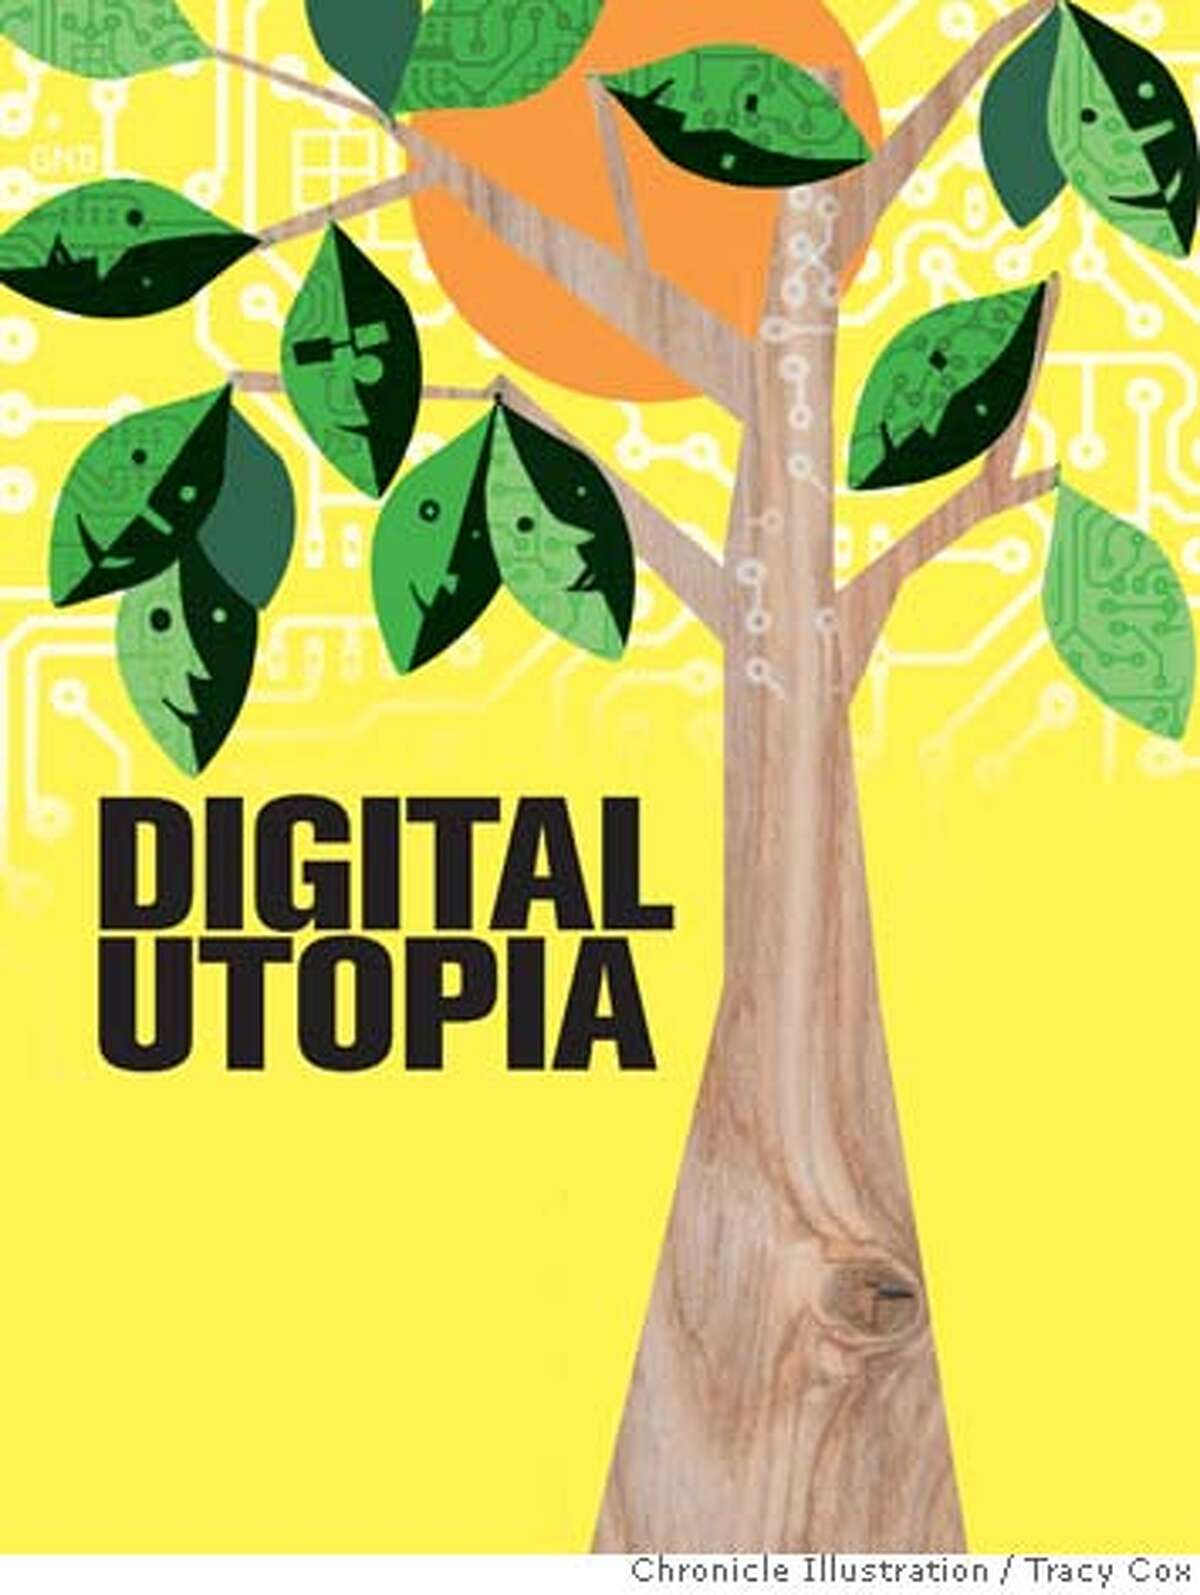 Digital Utopia. Chronicle illustration by Tracy Cox